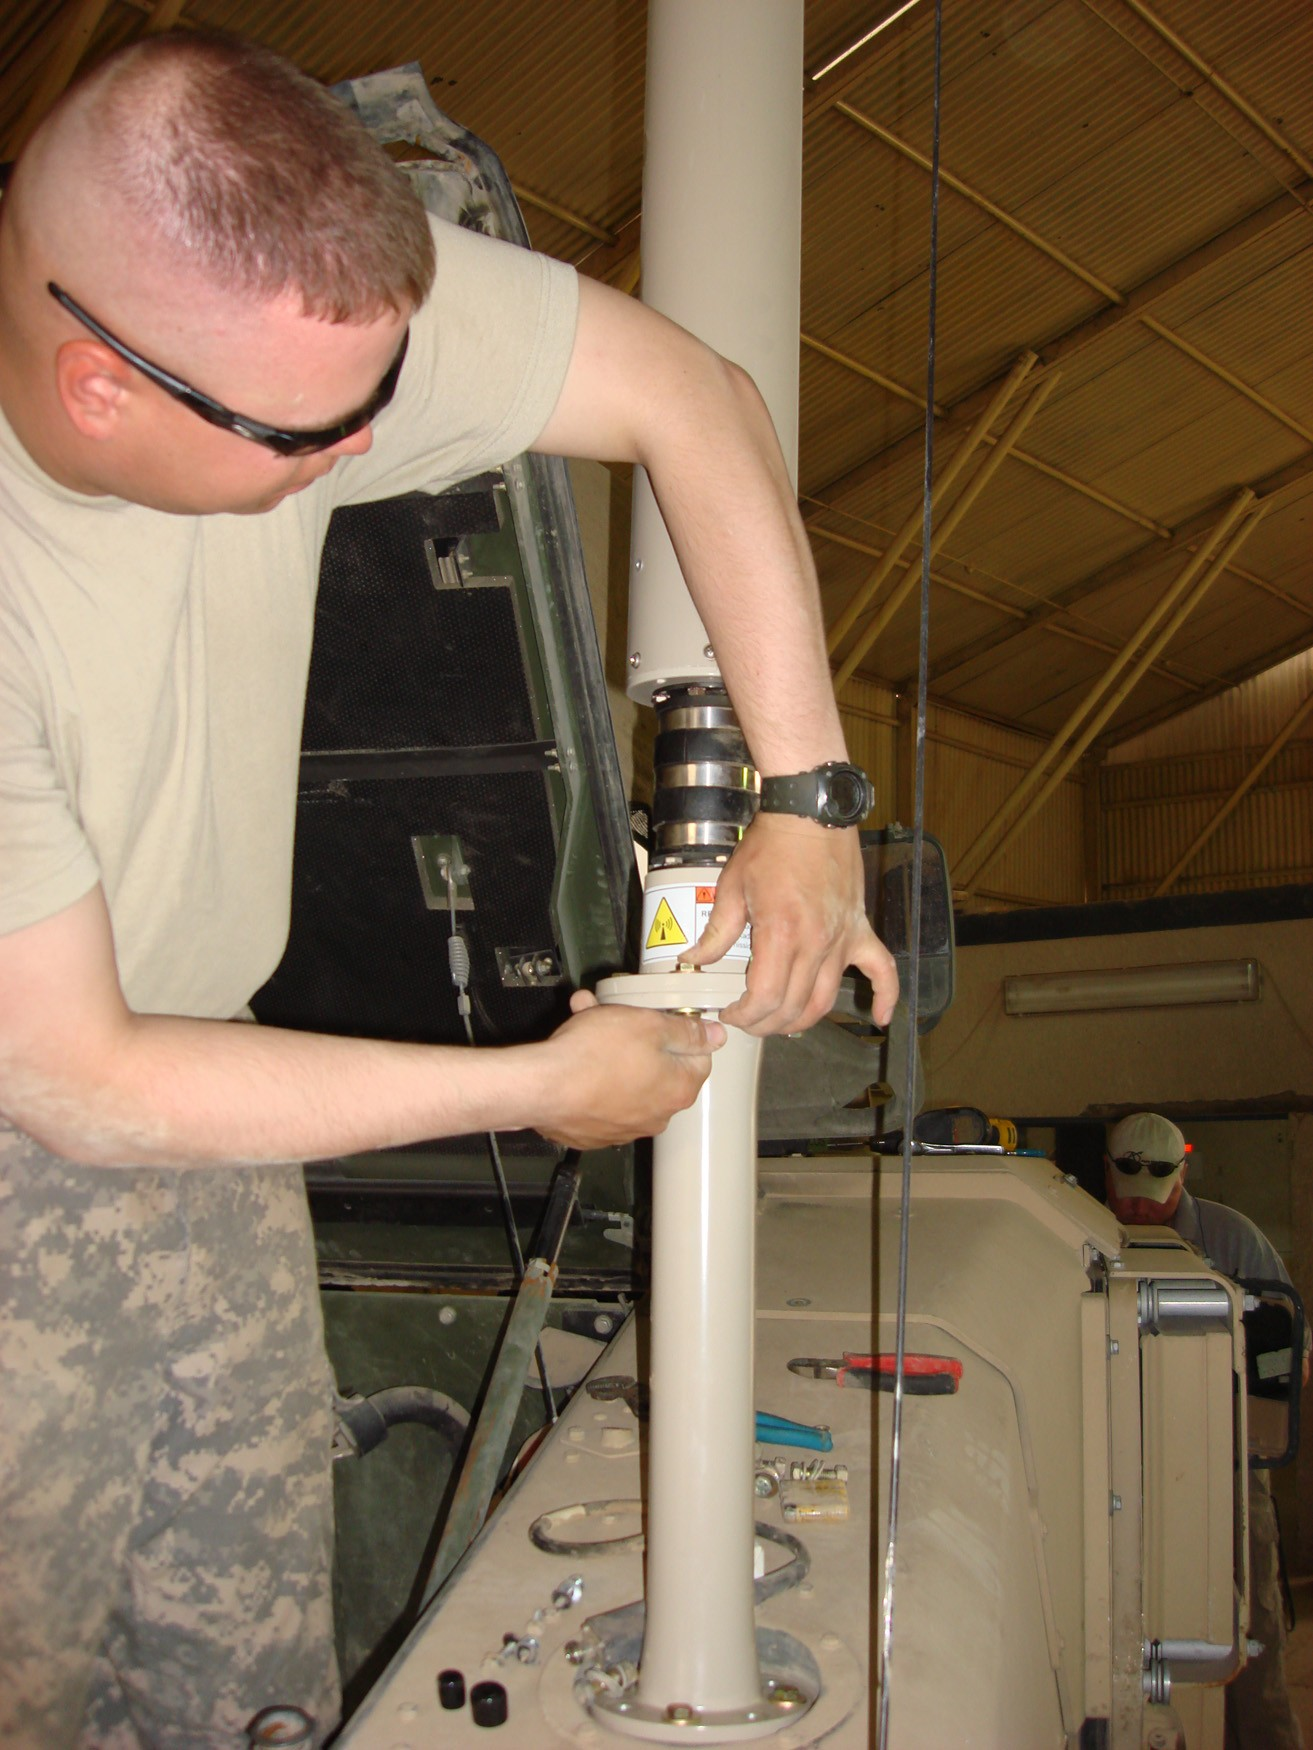 http://www.army.mil/-images/2009/02/06/29618/army.mil-29618-2009-02-06-160250.jpg